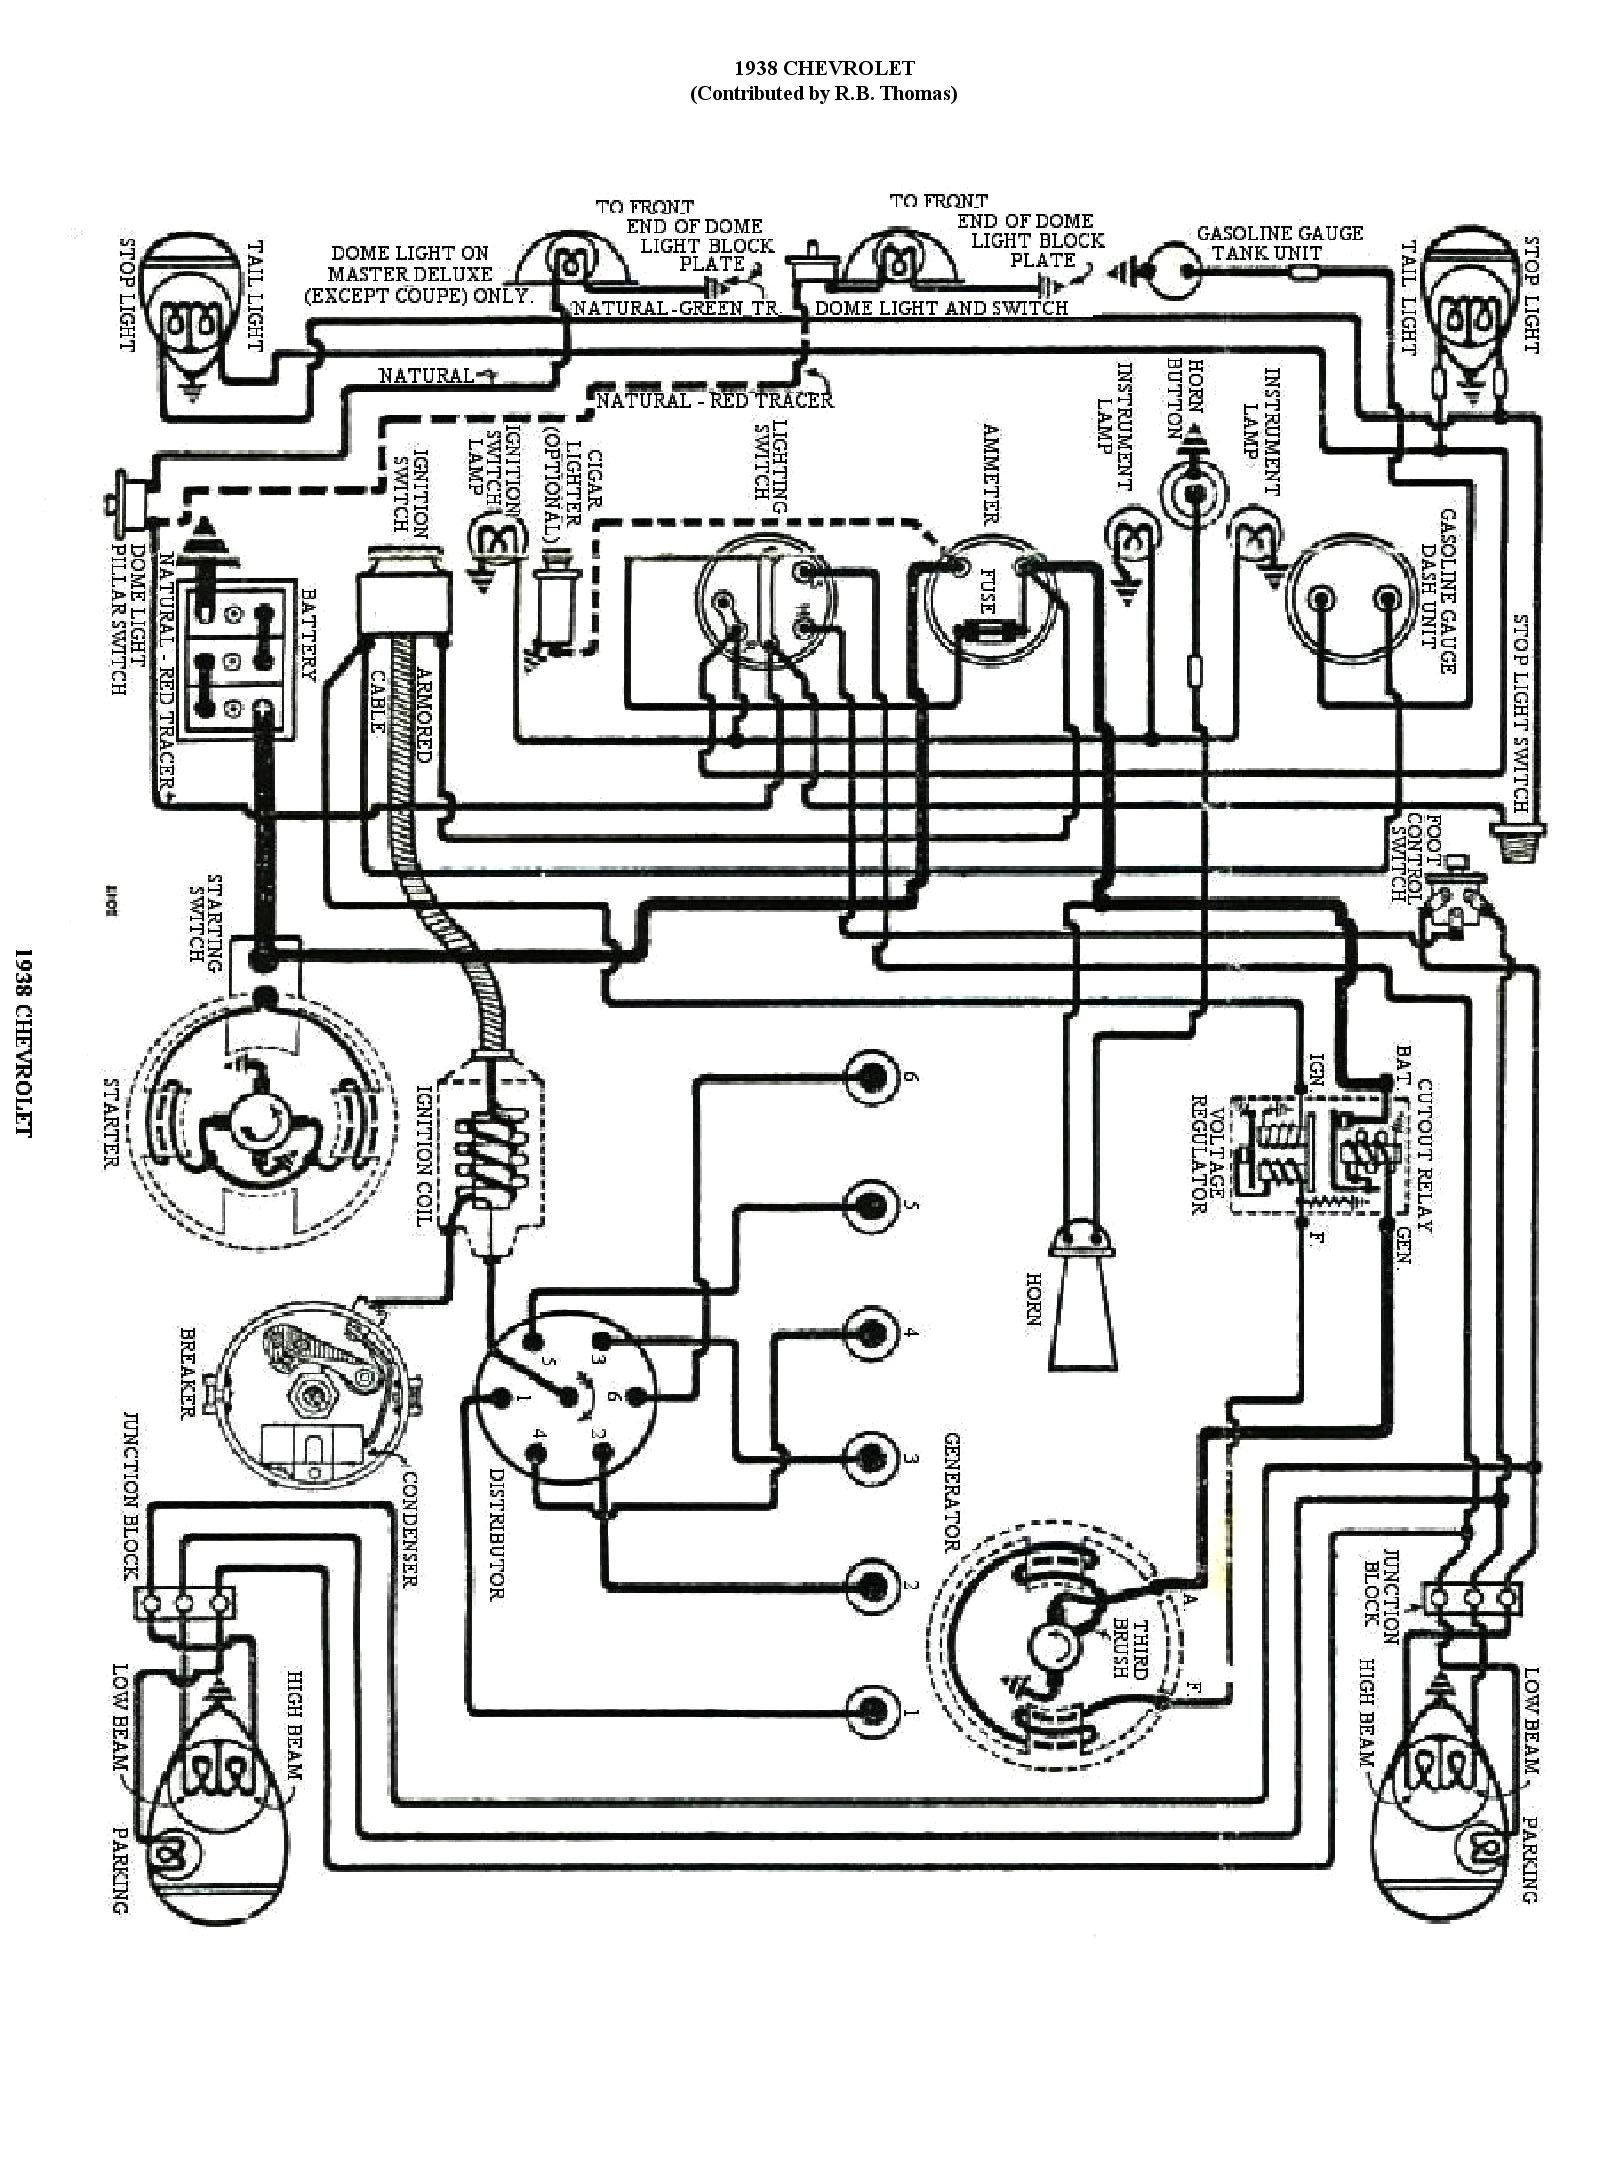 chevy wiring diagrams Chevy Dual Battery Setup 1938 wiring